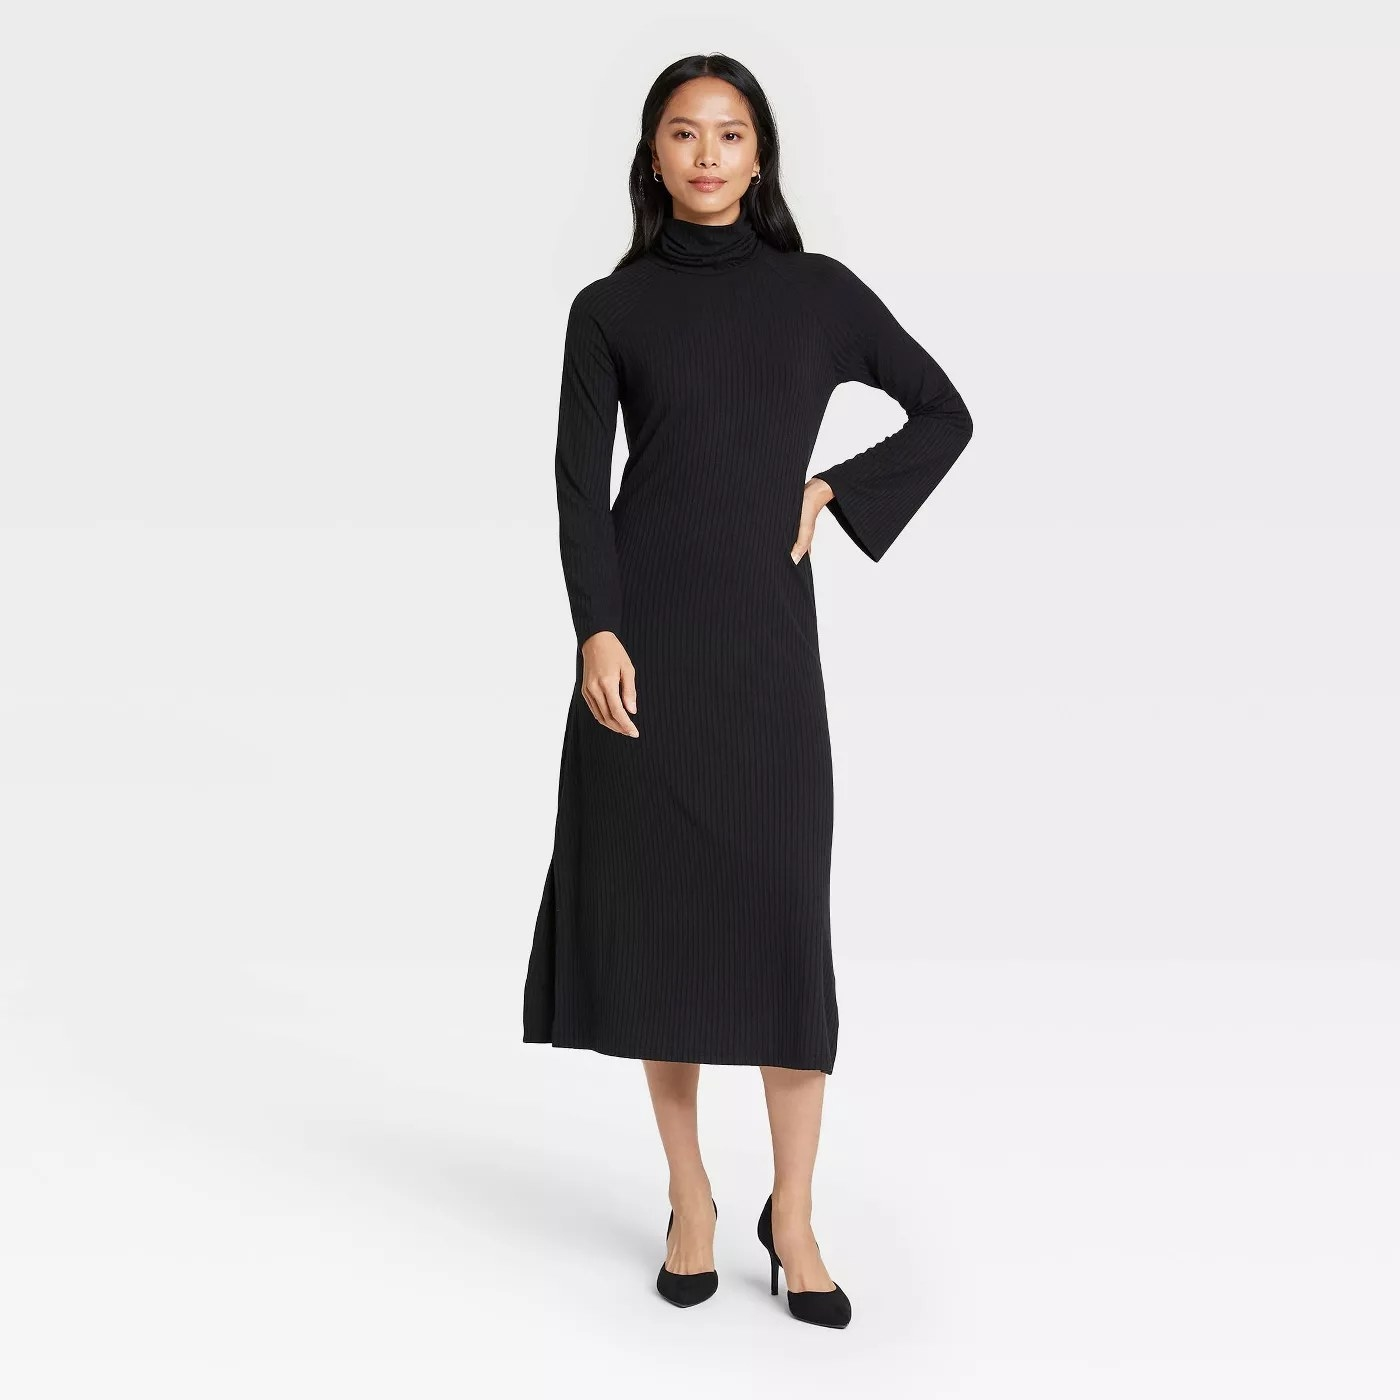 a model wears a black dress with bell sleeves